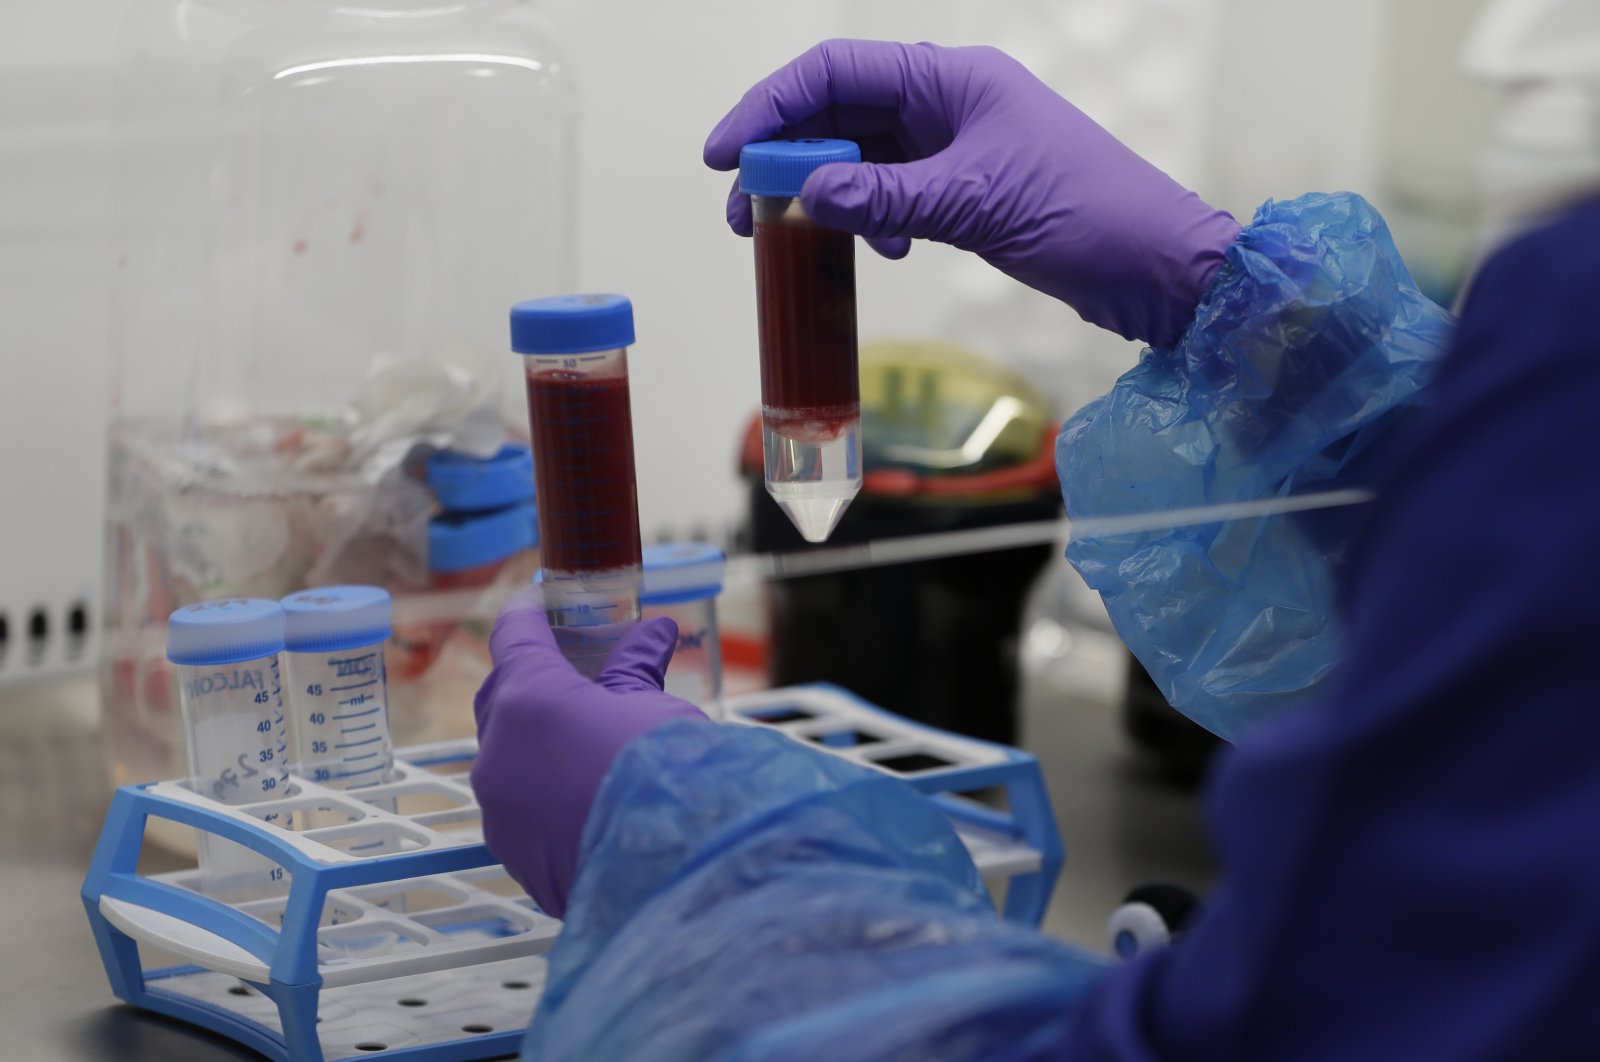 Blood samples from coronavirus patients are prepared for analysis as part of the TACTIC-R trial in the Blood Processing Lab in the Cambridge Institute of Therapeutic Immunology and Infectious Disease, in Cambridge, England, May 21, 2020. (AP Photo)